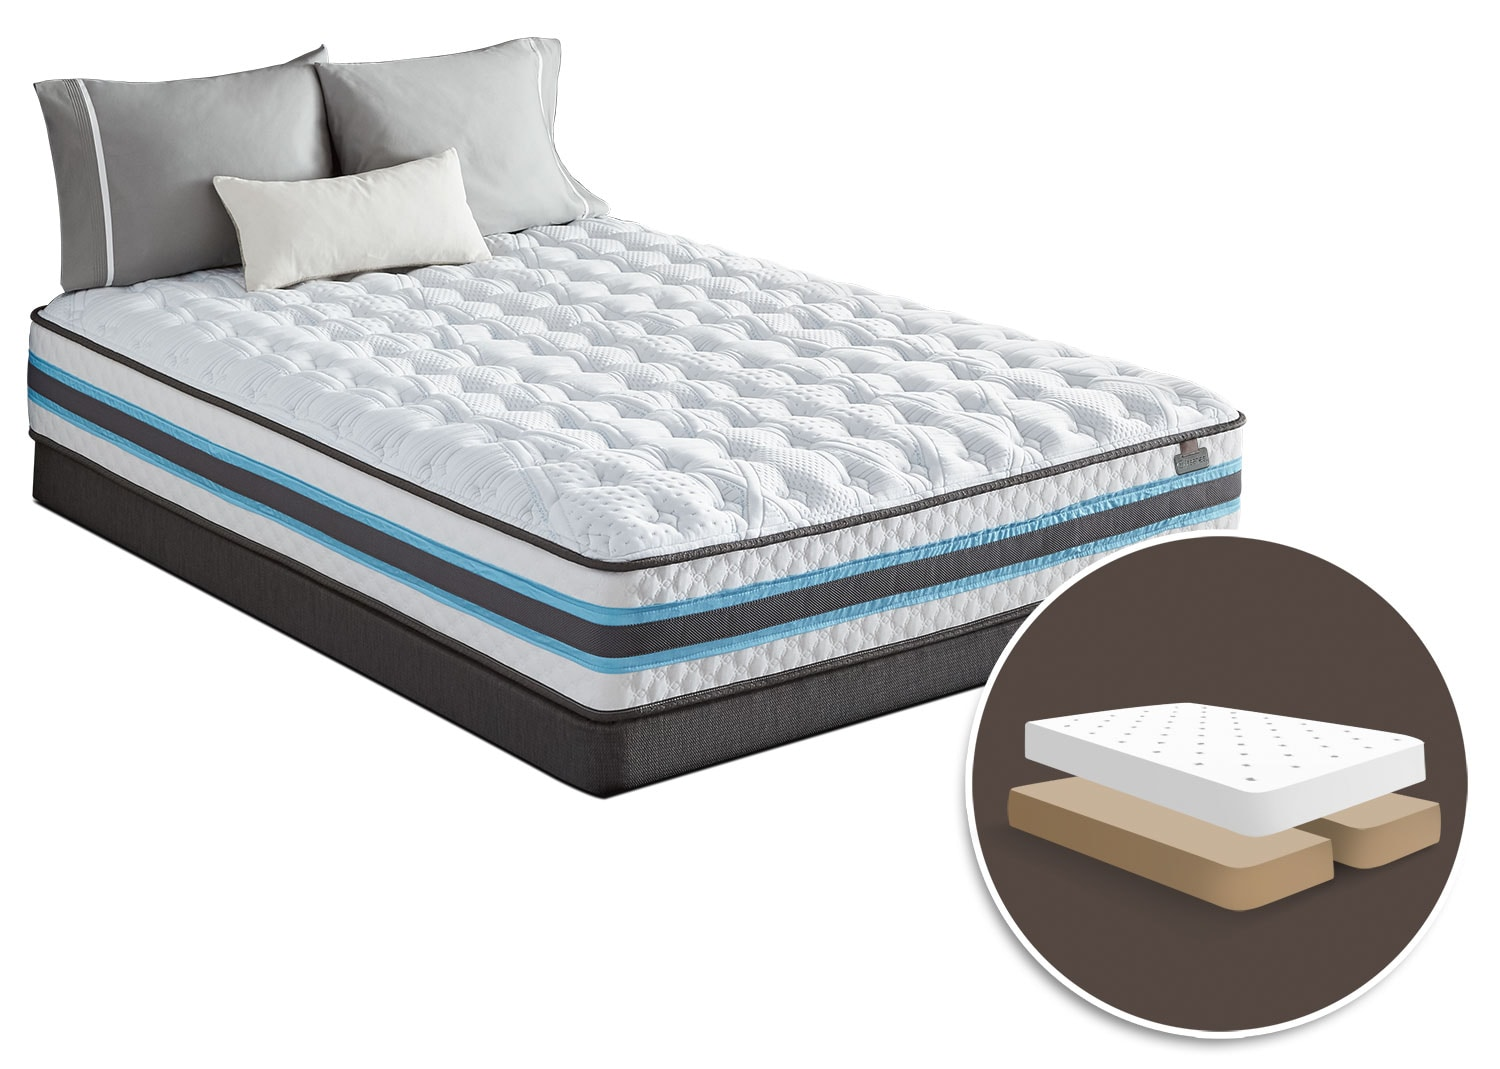 Serta iSeries® Atmosphere Tight-Top Firm Split Queen Mattress Set